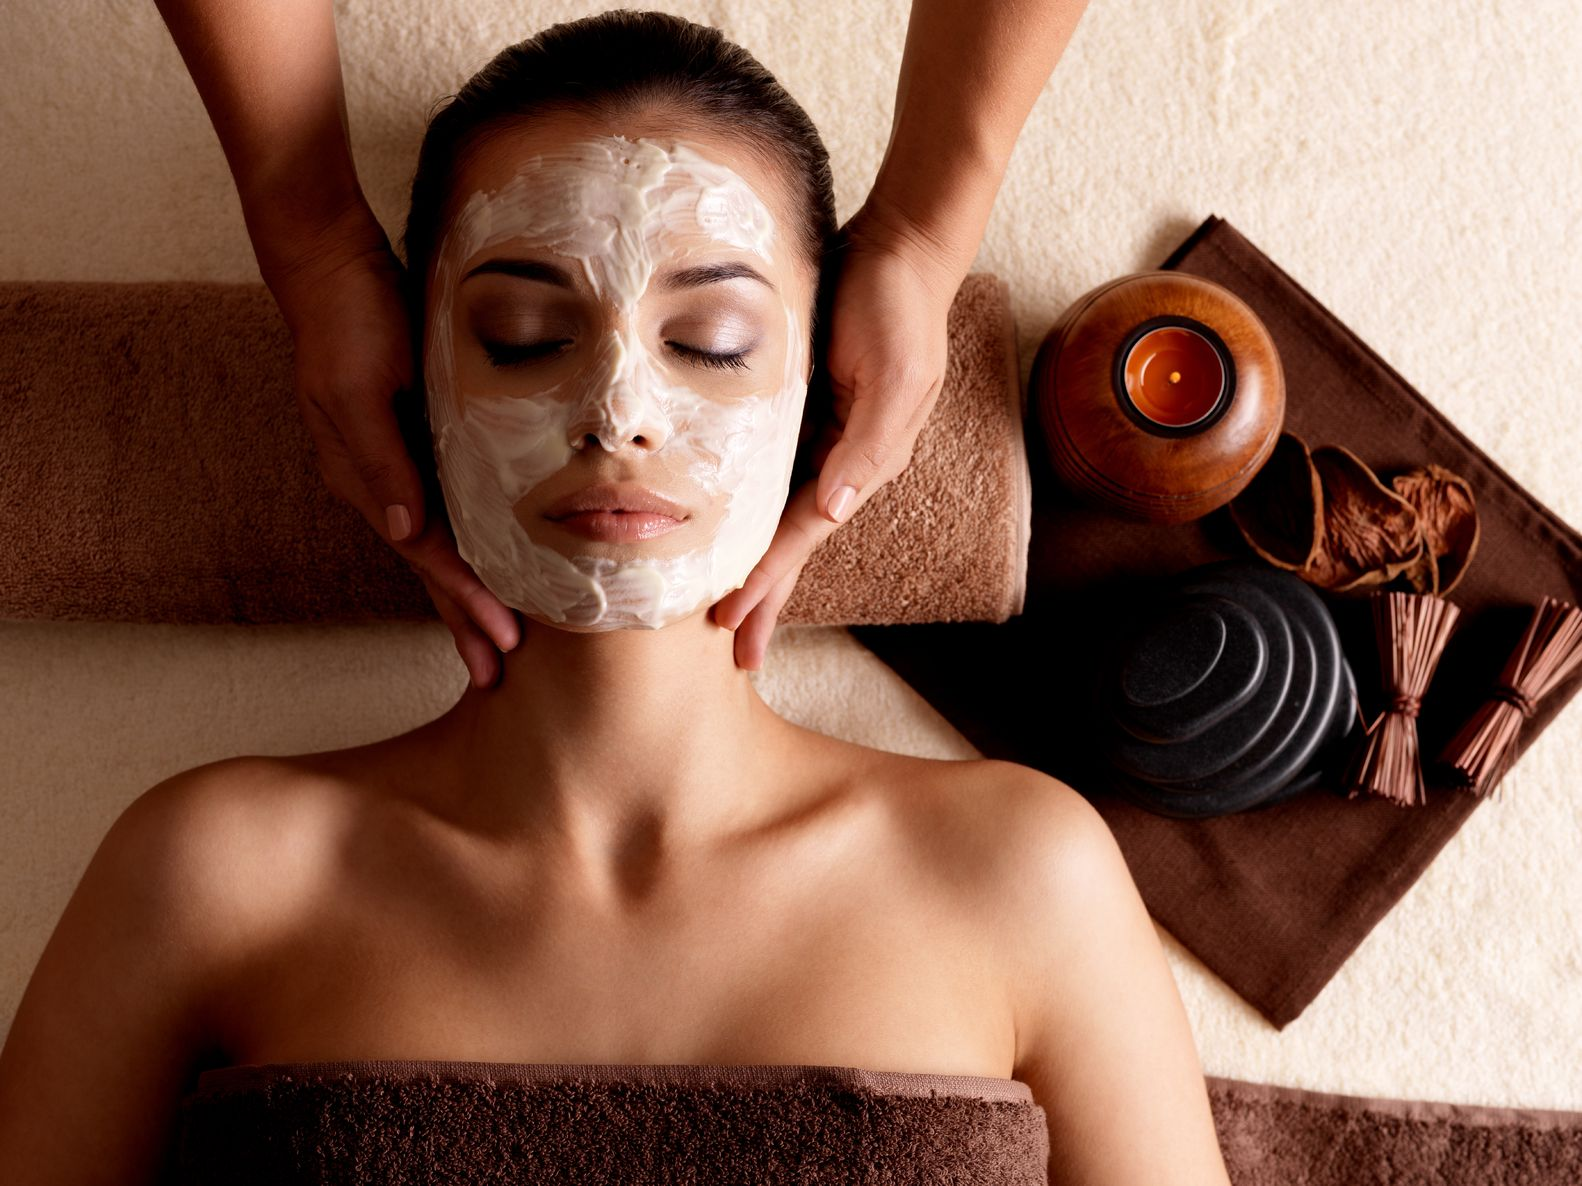 16578470 - spa massage for young woman with facial mask on face - indoors